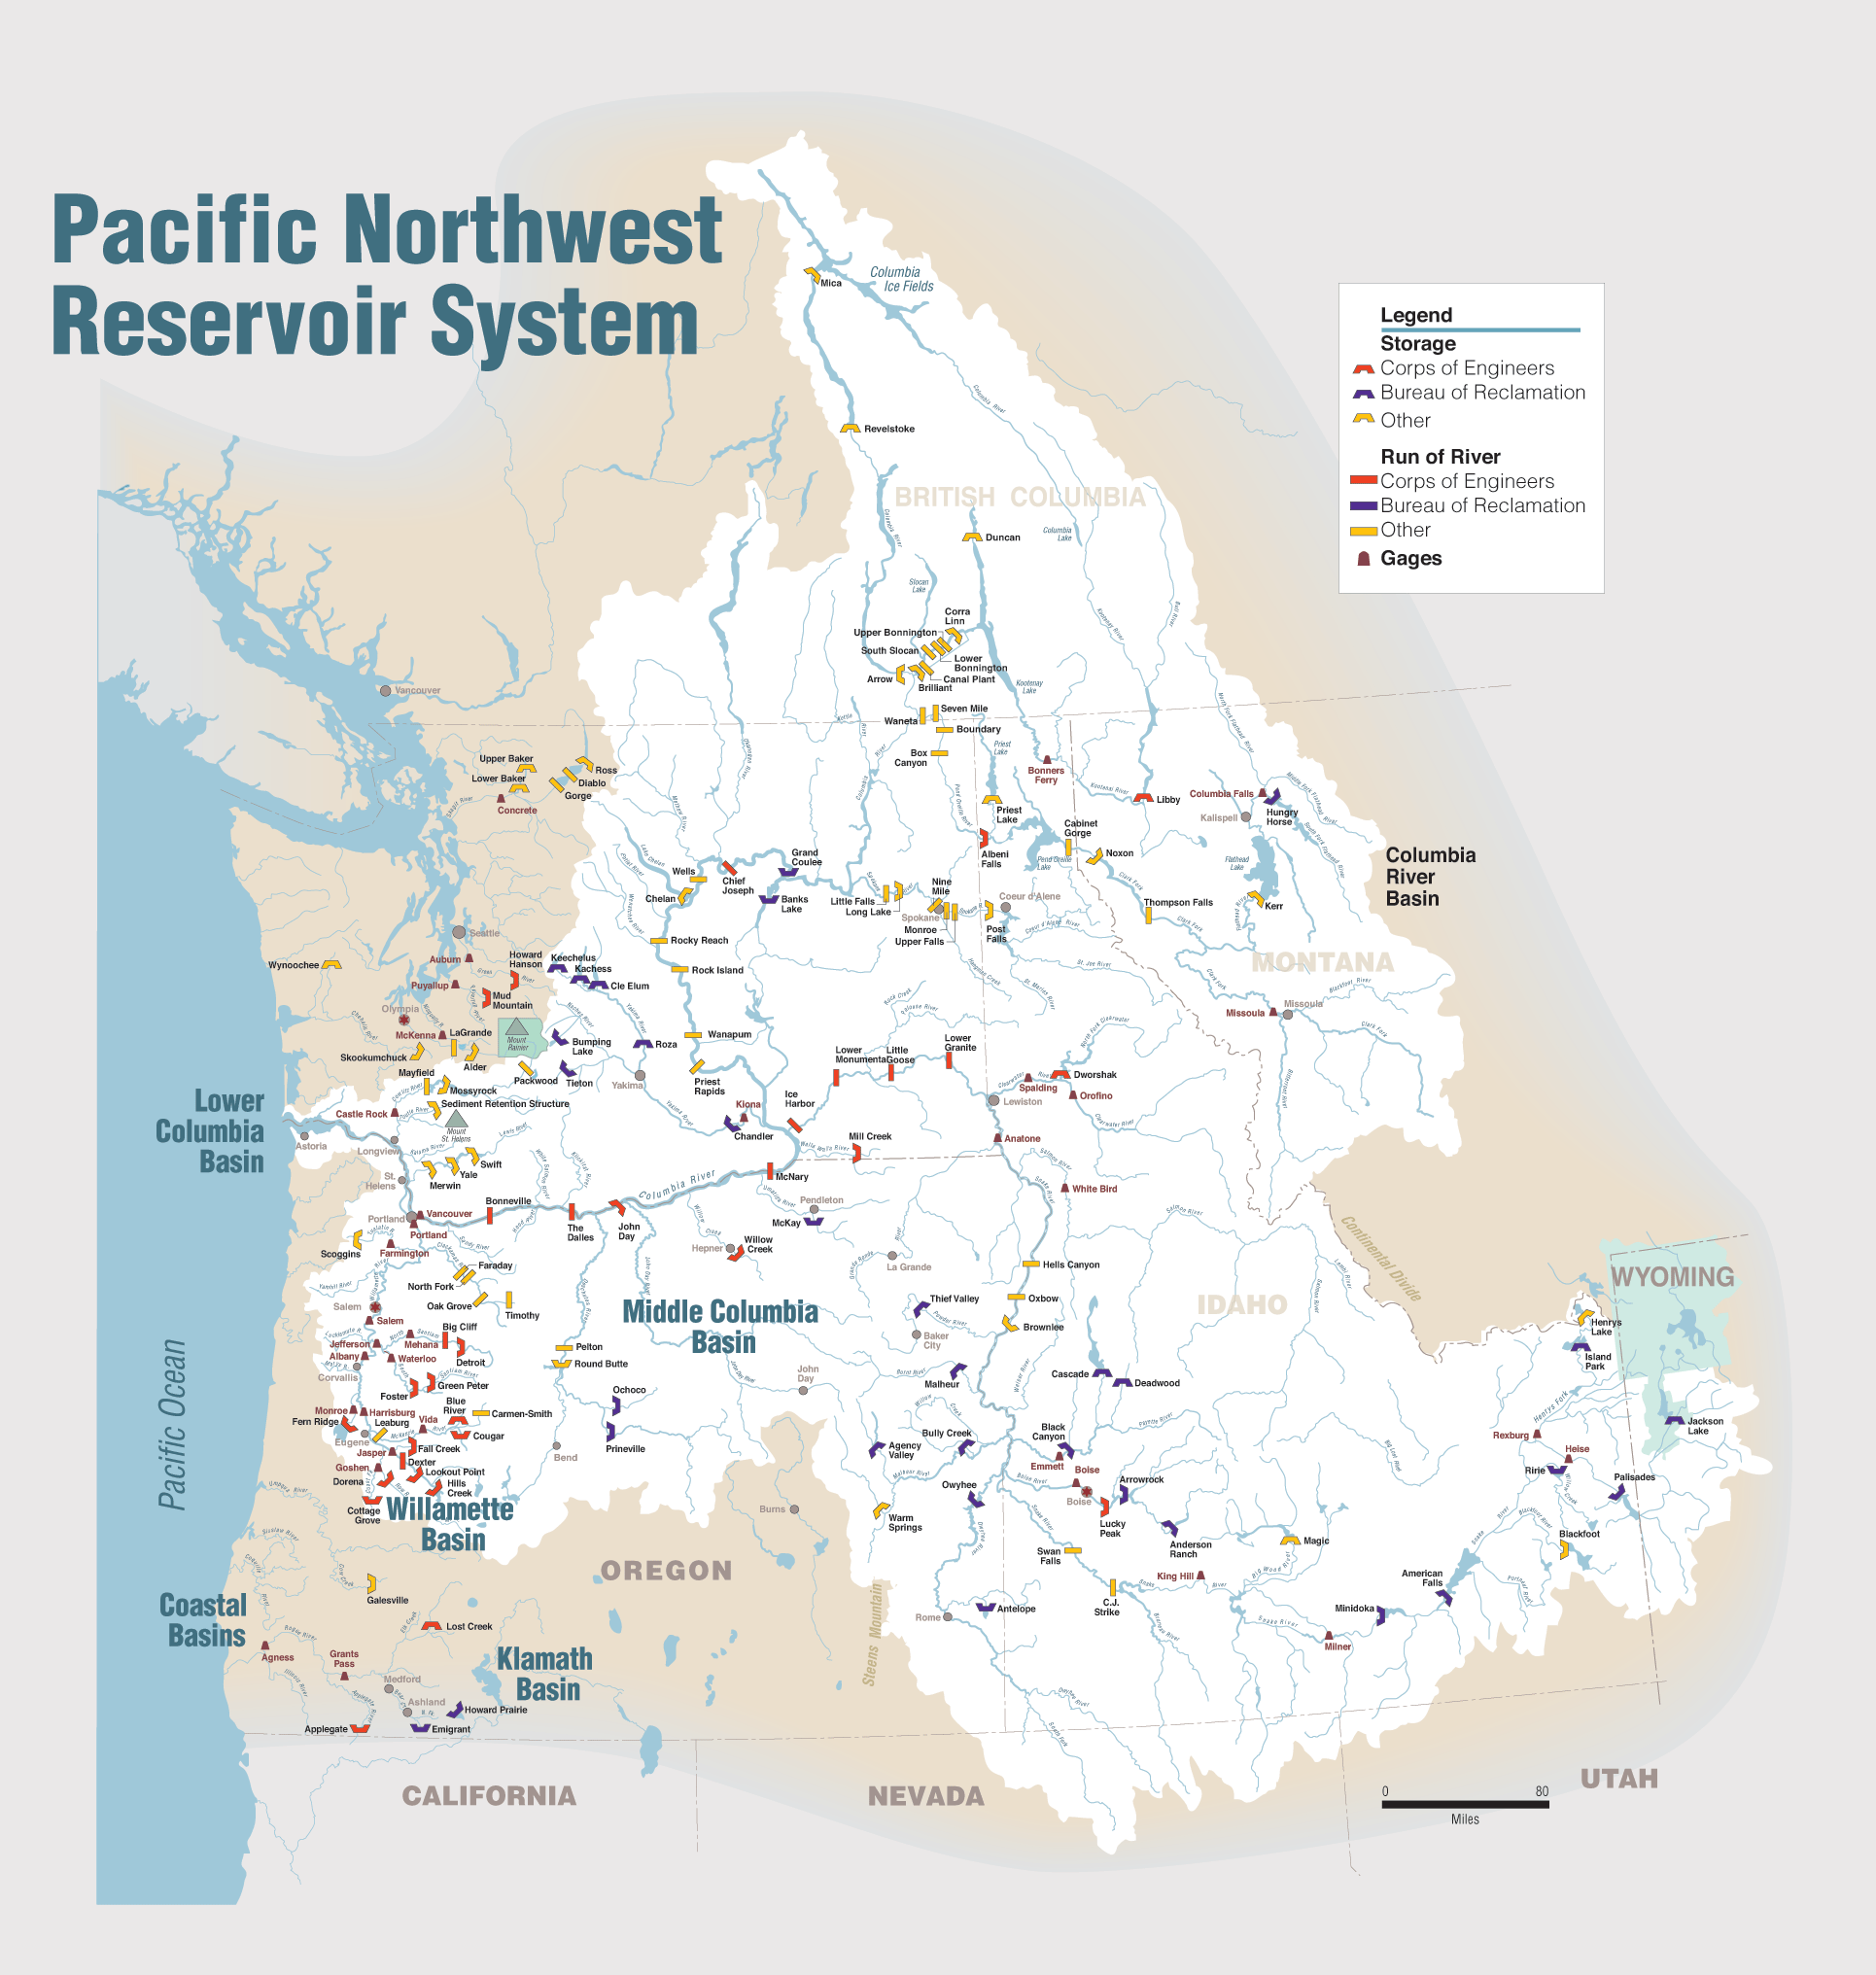 FilePacific Northwest River Systempng Wikimedia Commons - River system map